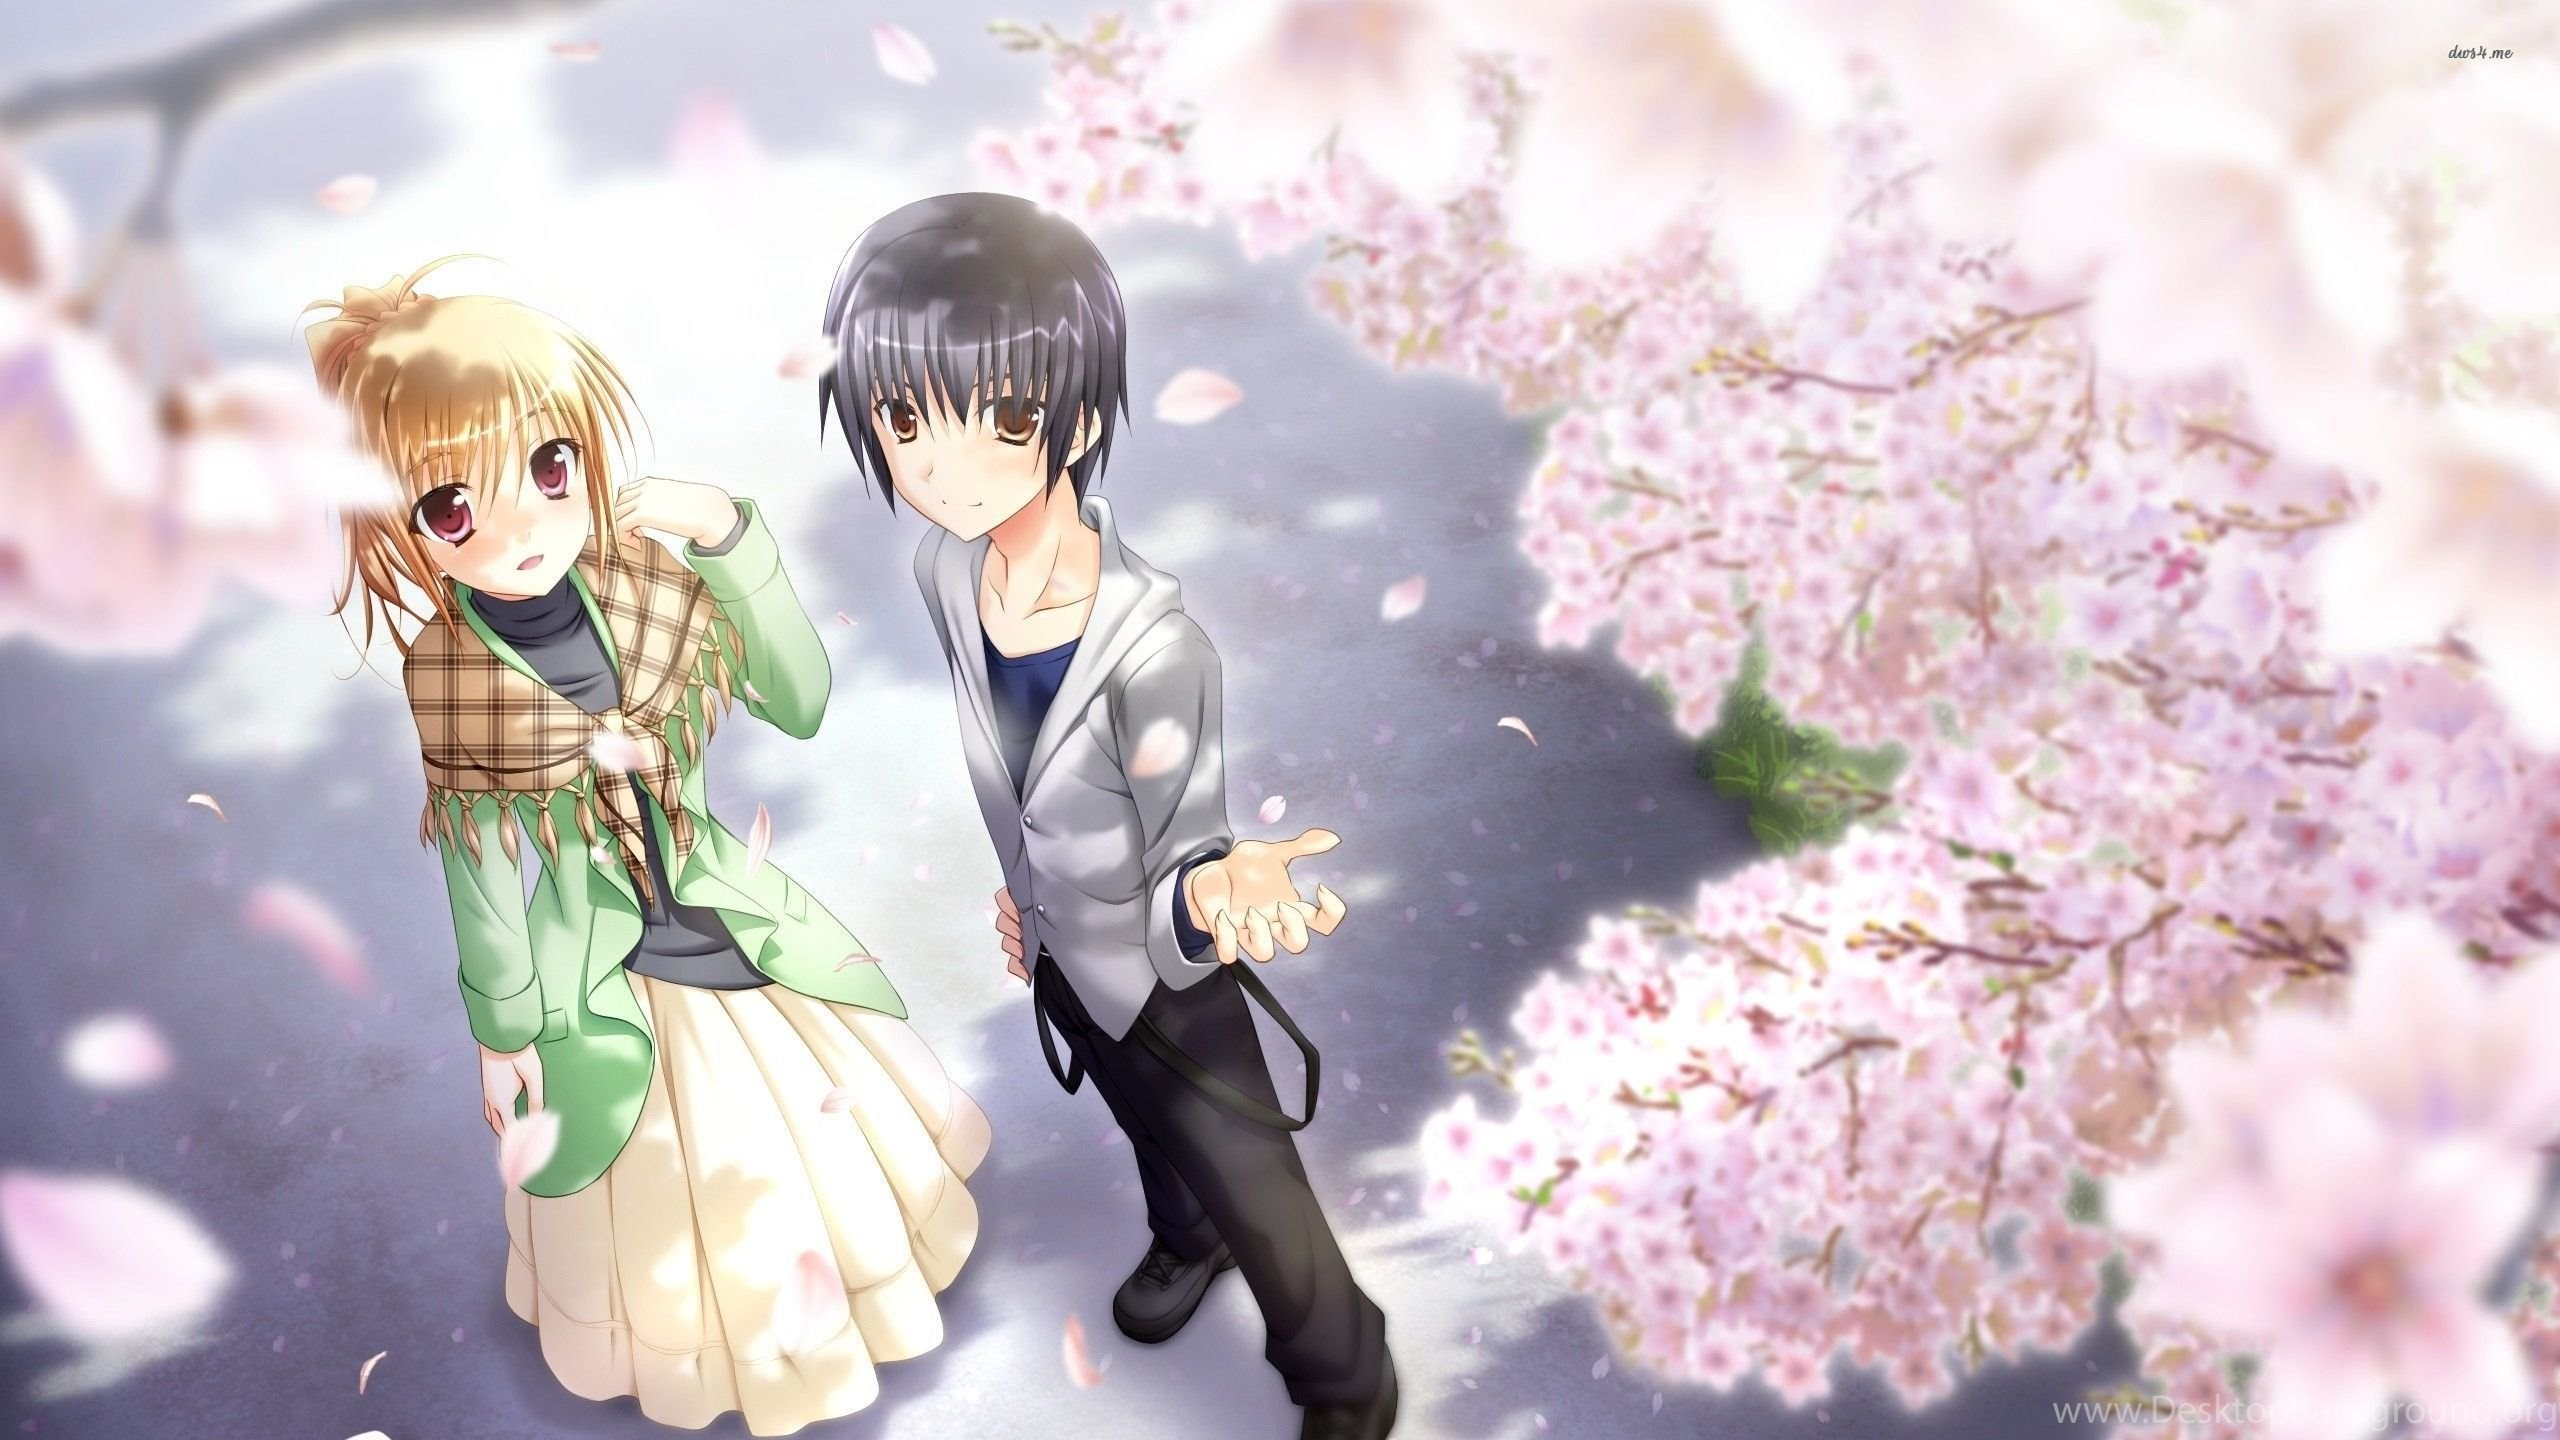 Res: 2560x1440, Anime Couples Wallpaper